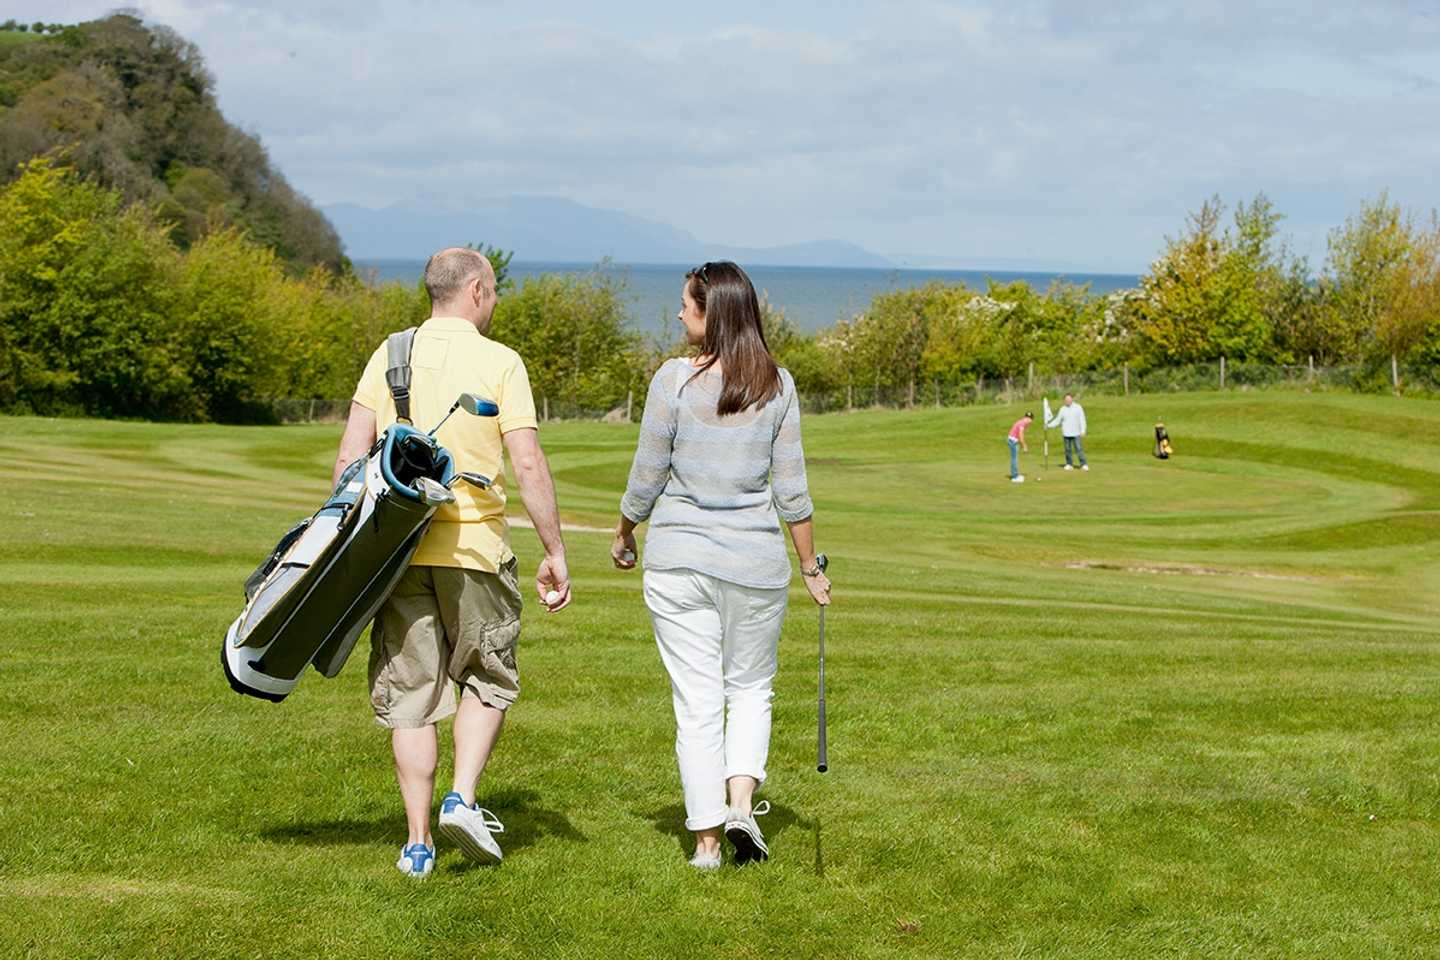 Couple playing golf over-looking the sea